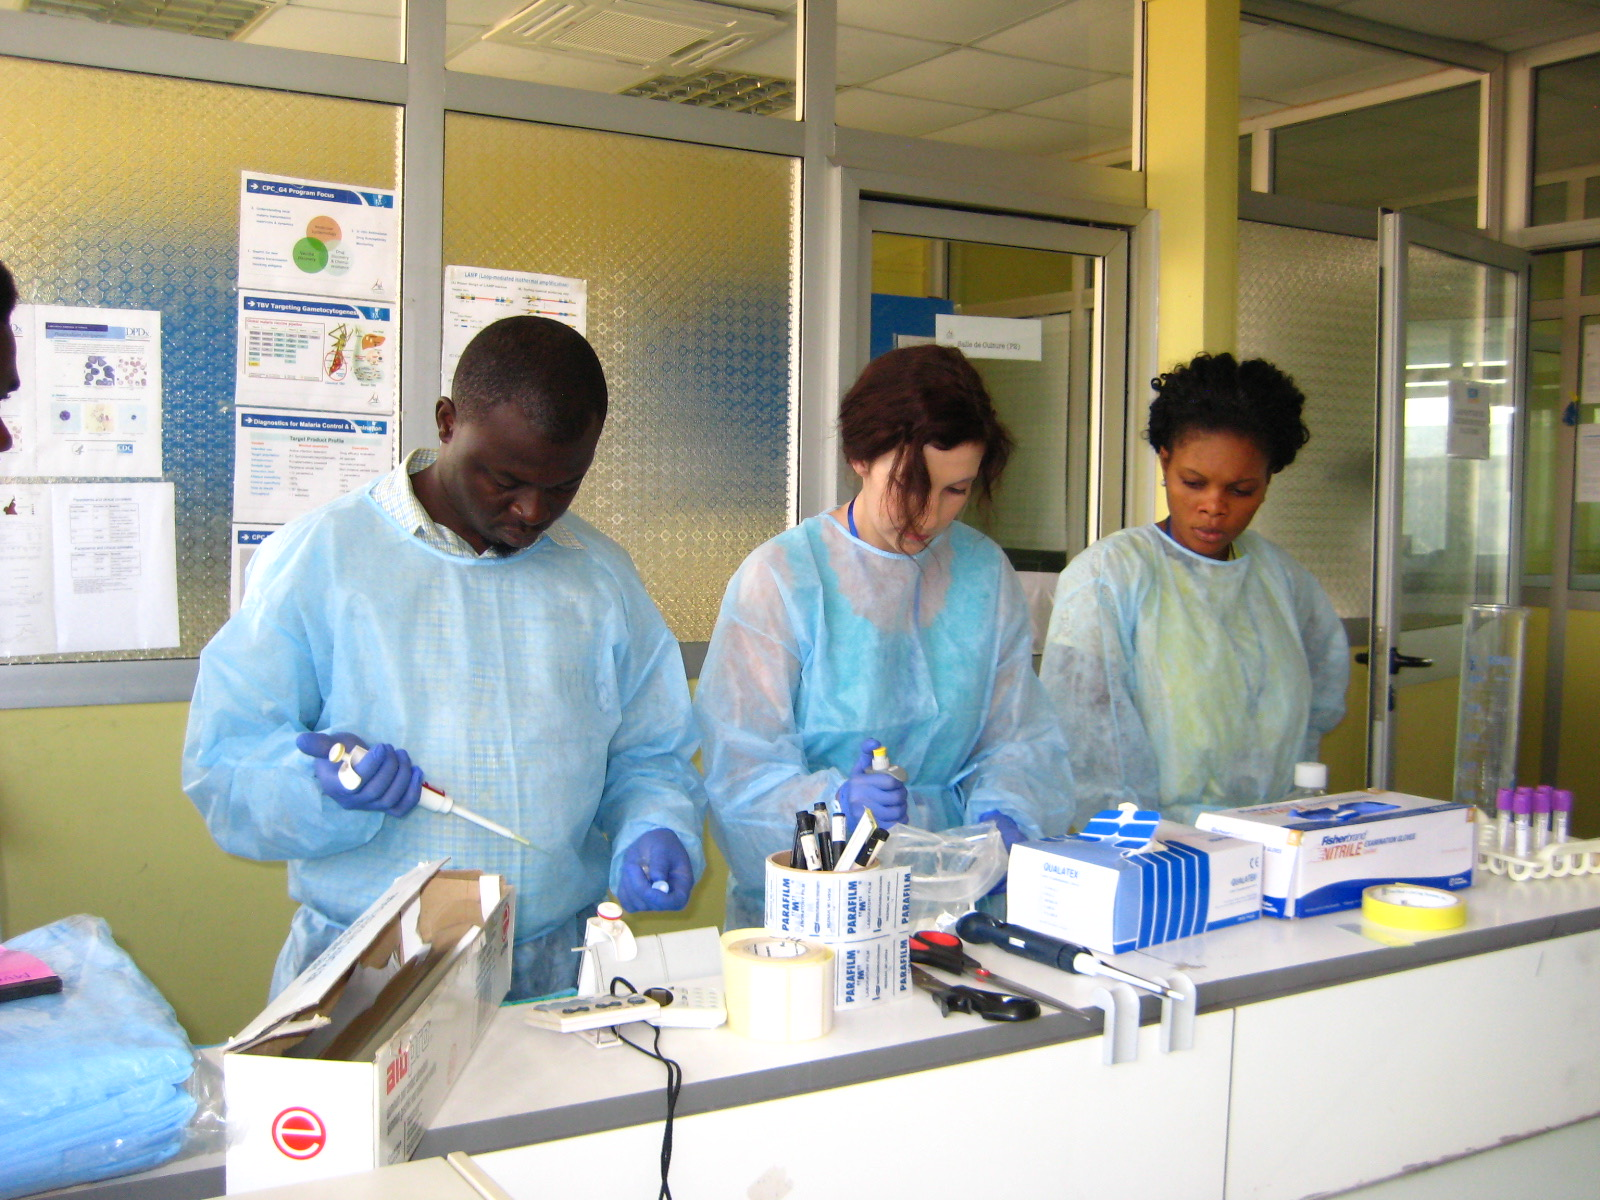 Thayer Darling, PhD, working with Cameroonian students